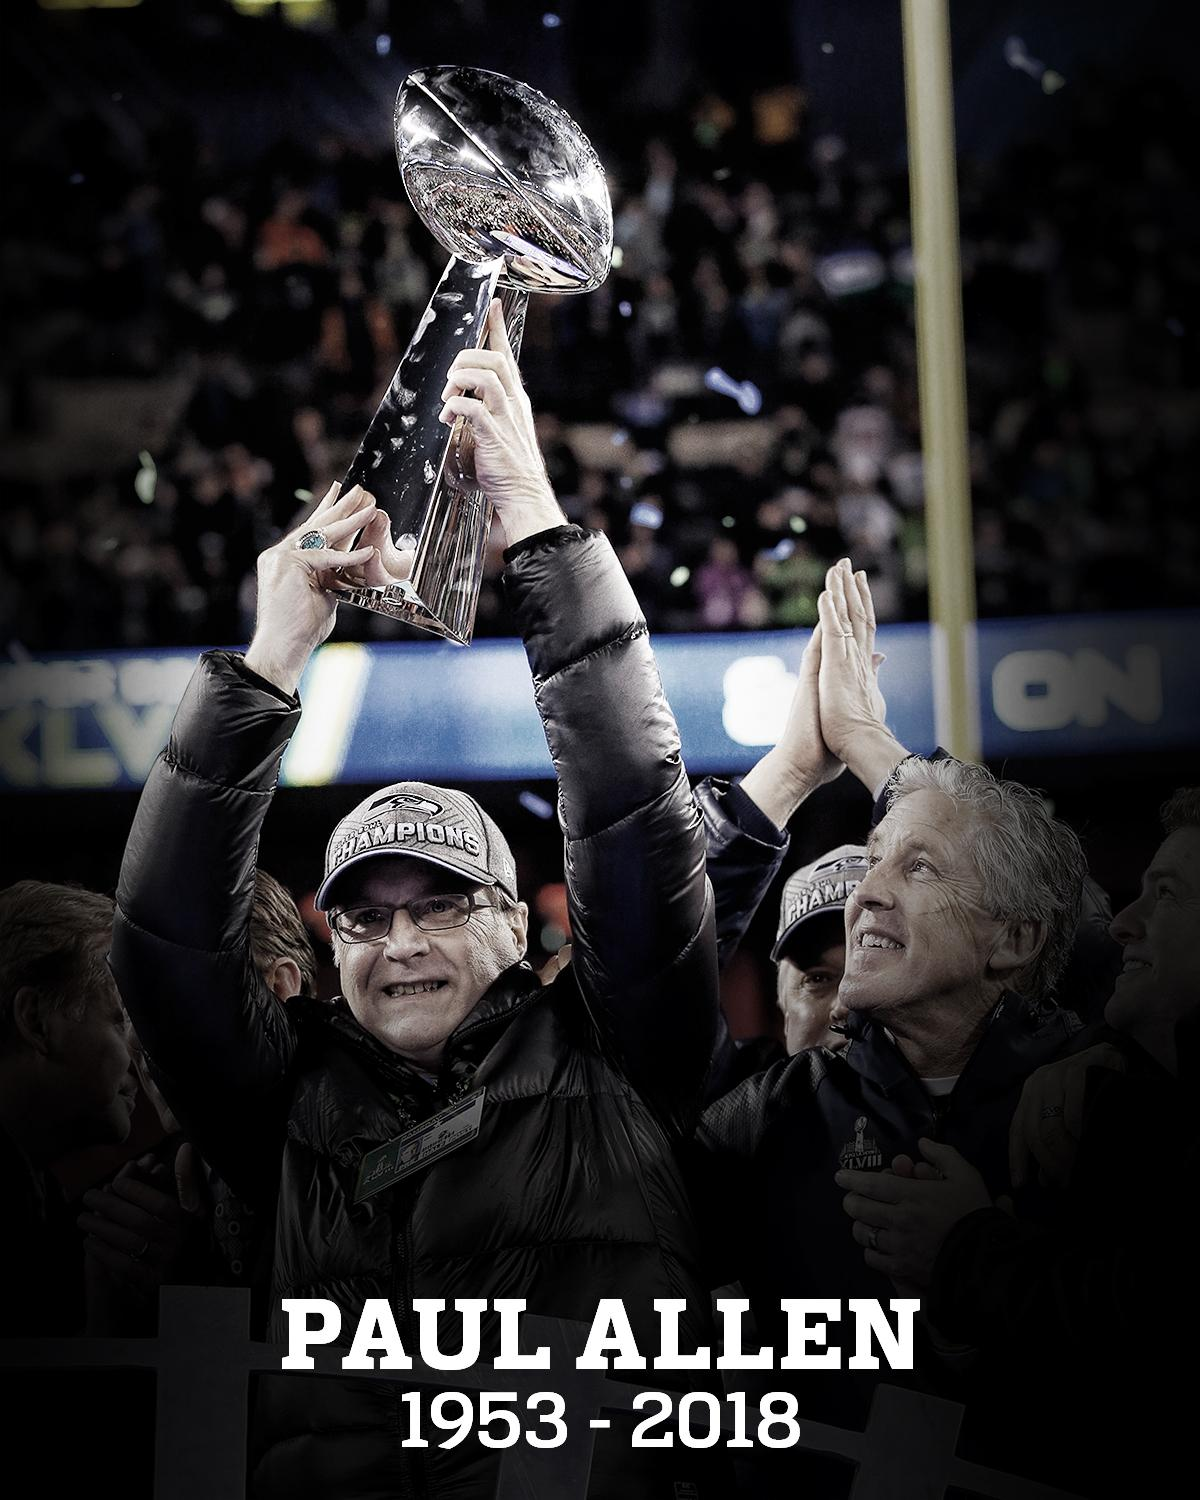 We are saddened to share that @Seahawks owner Paul Allen has passed away at age 65: https://t.co/Qcc4onRSZA https://t.co/WXwpwSSTxh